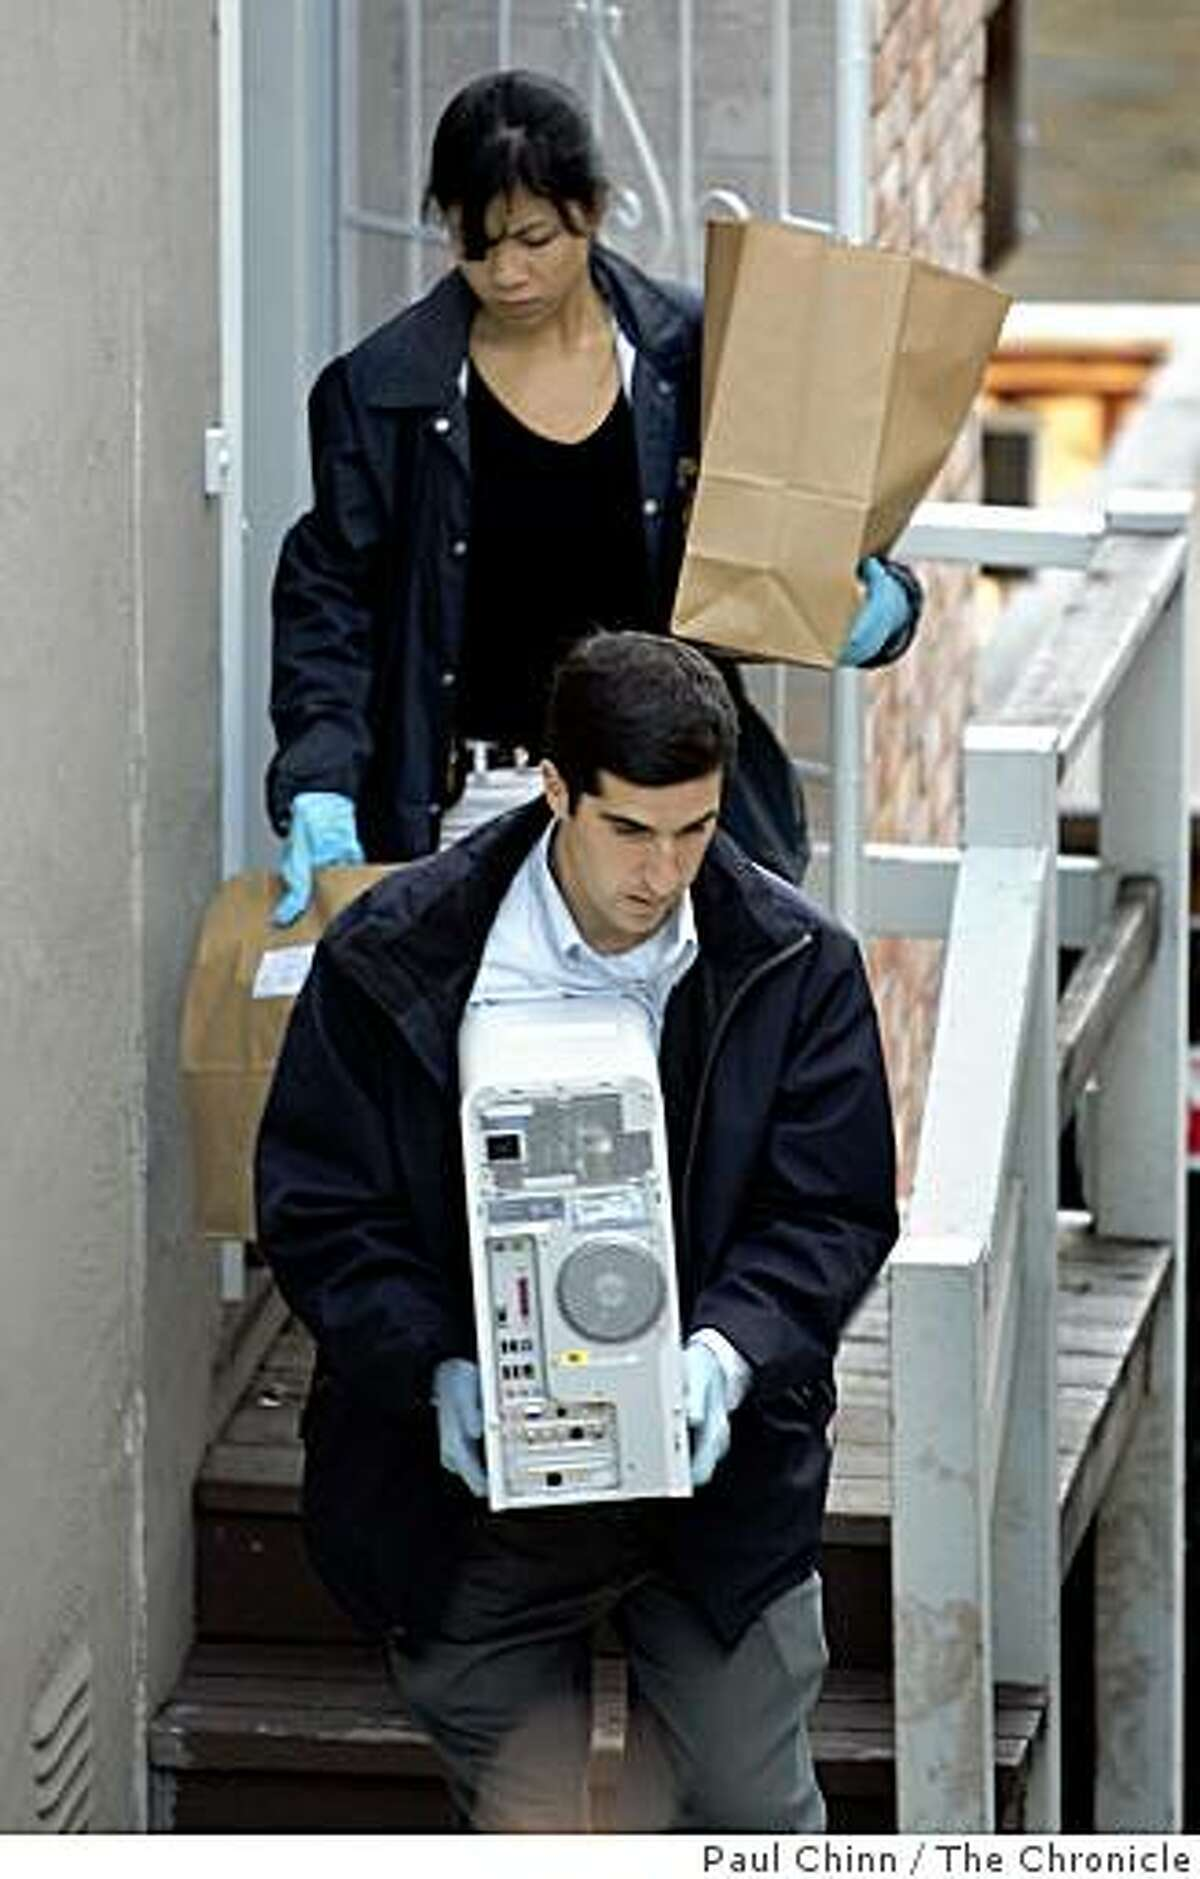 Federal agents removed two desktop computers and several unmarked bags of evidence from Nick Perata's home. FBI and IRS authorities served a search warrant at the home of Nick Perata on 12/15/04 in Oakland, CA. Perata and his father state Senate Leader Don Perata are under federal investigation.